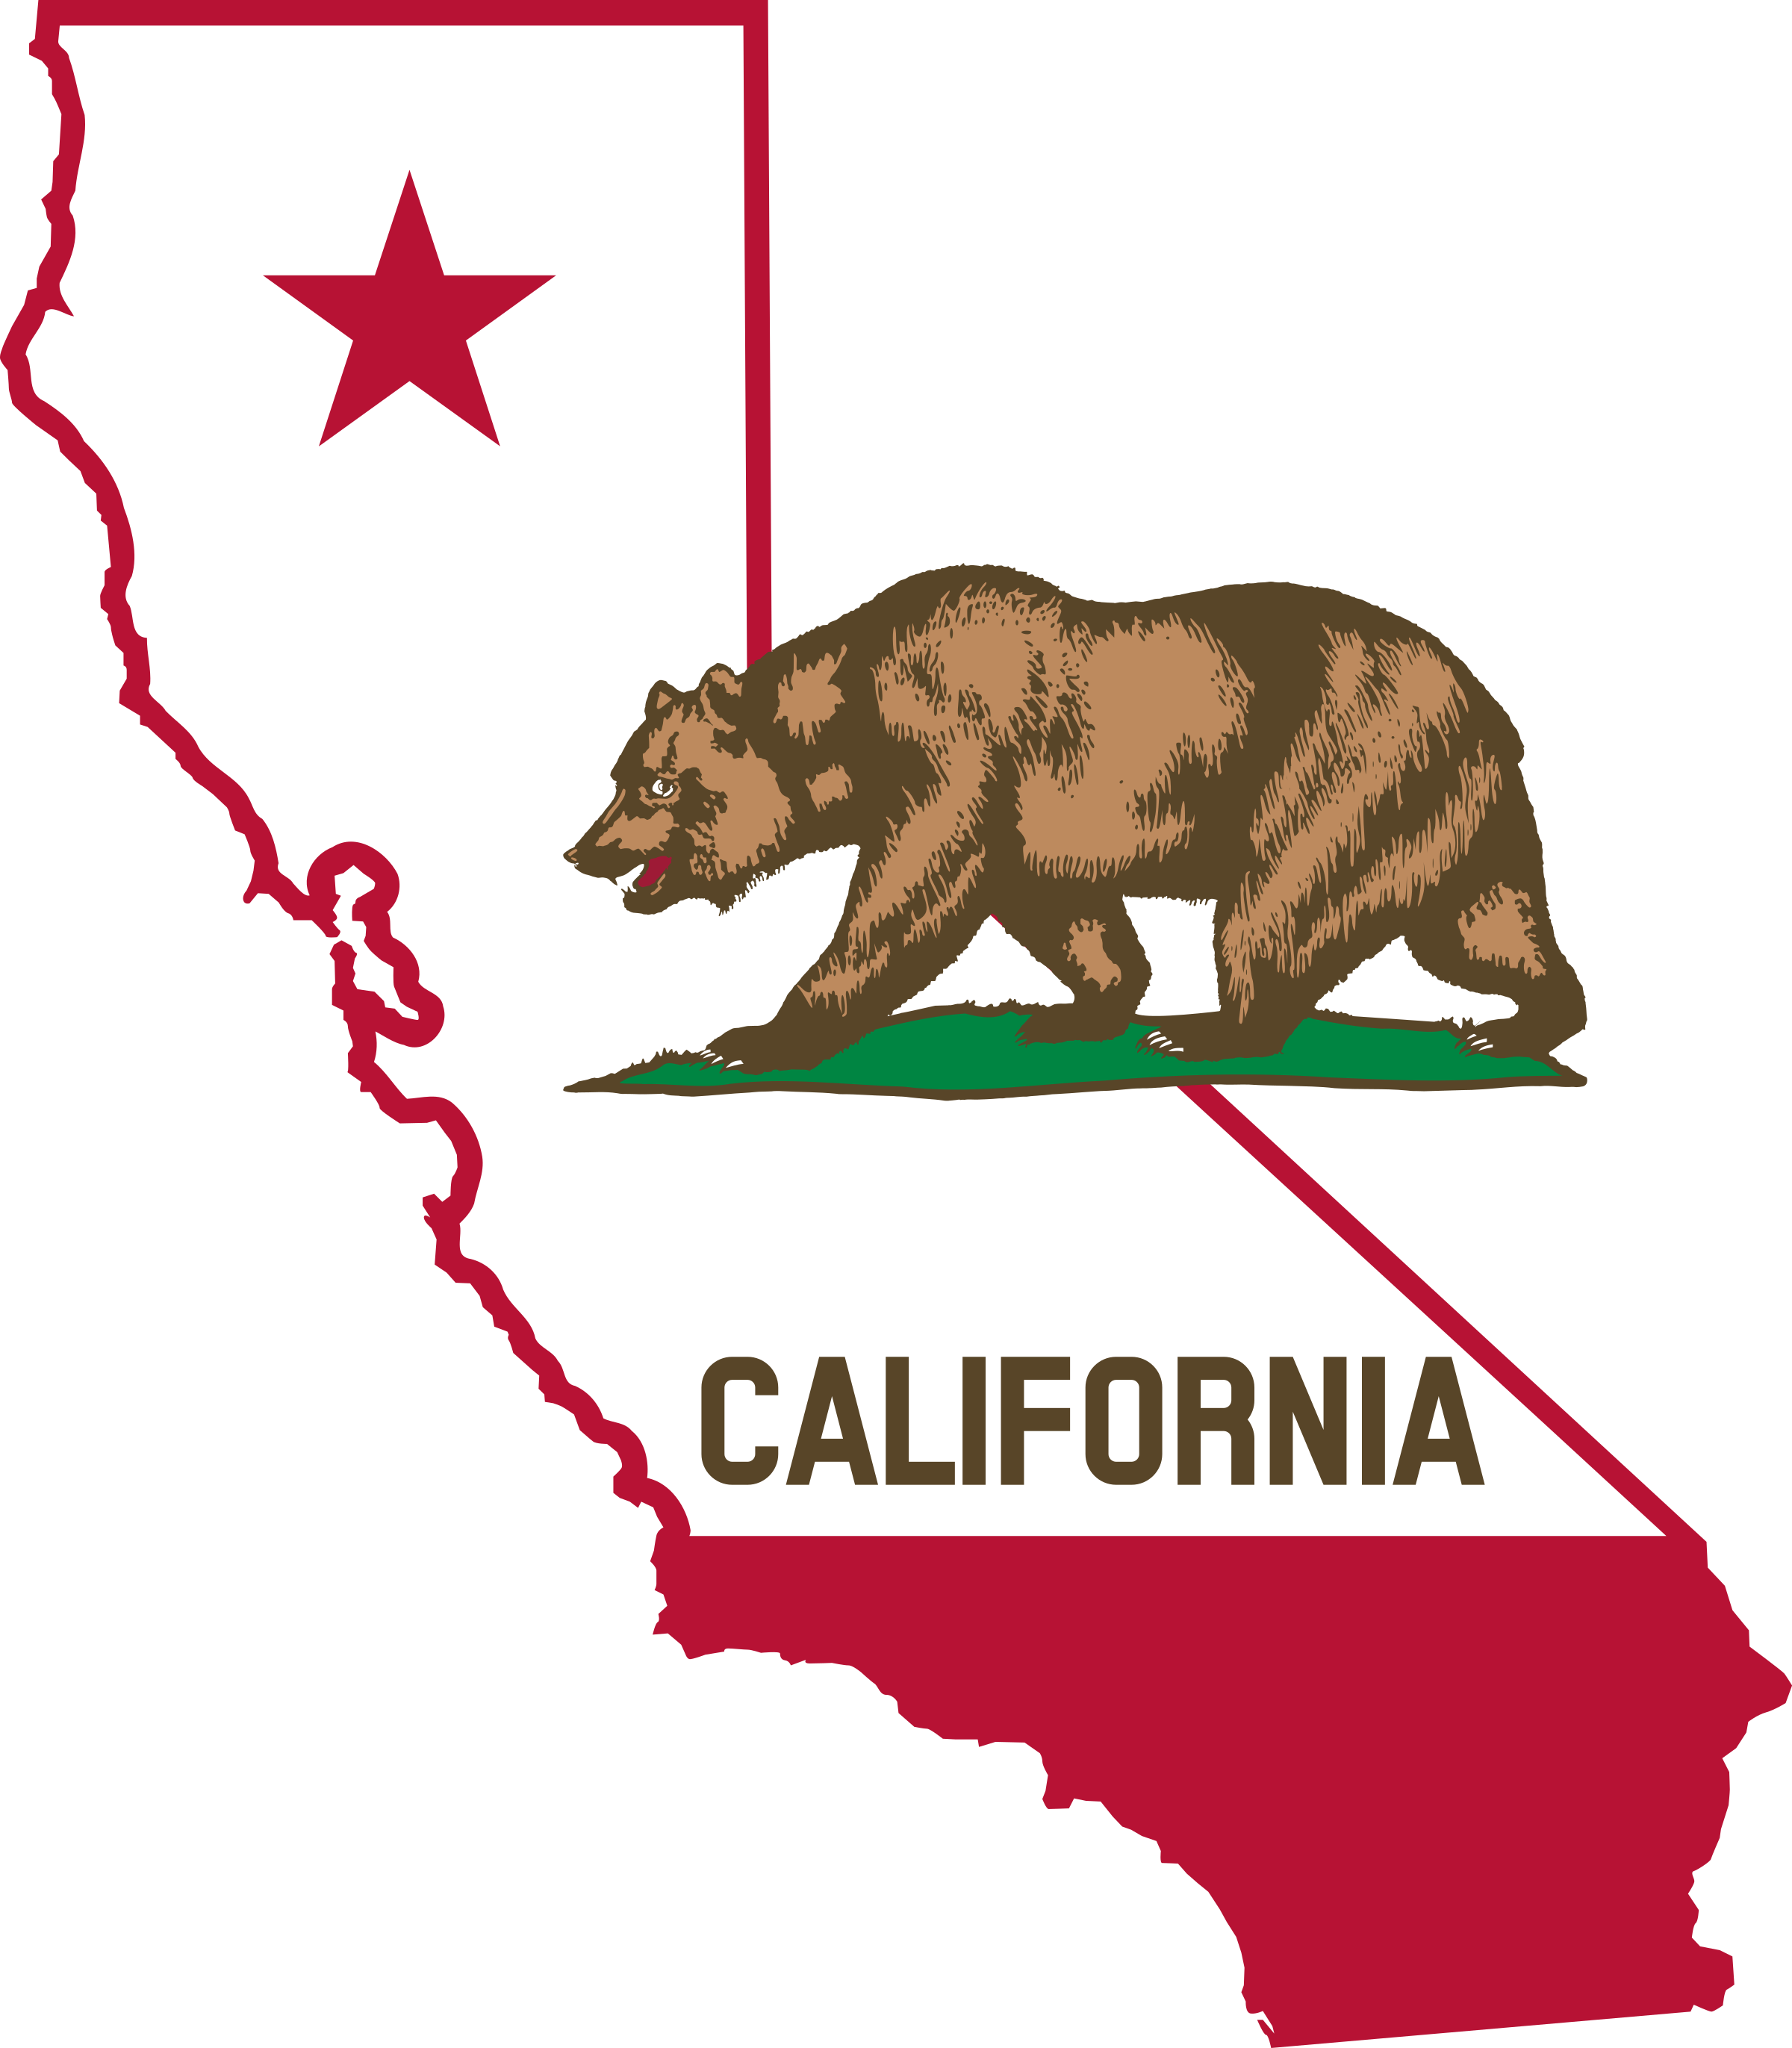 California svg clip art. Outline and flag icons